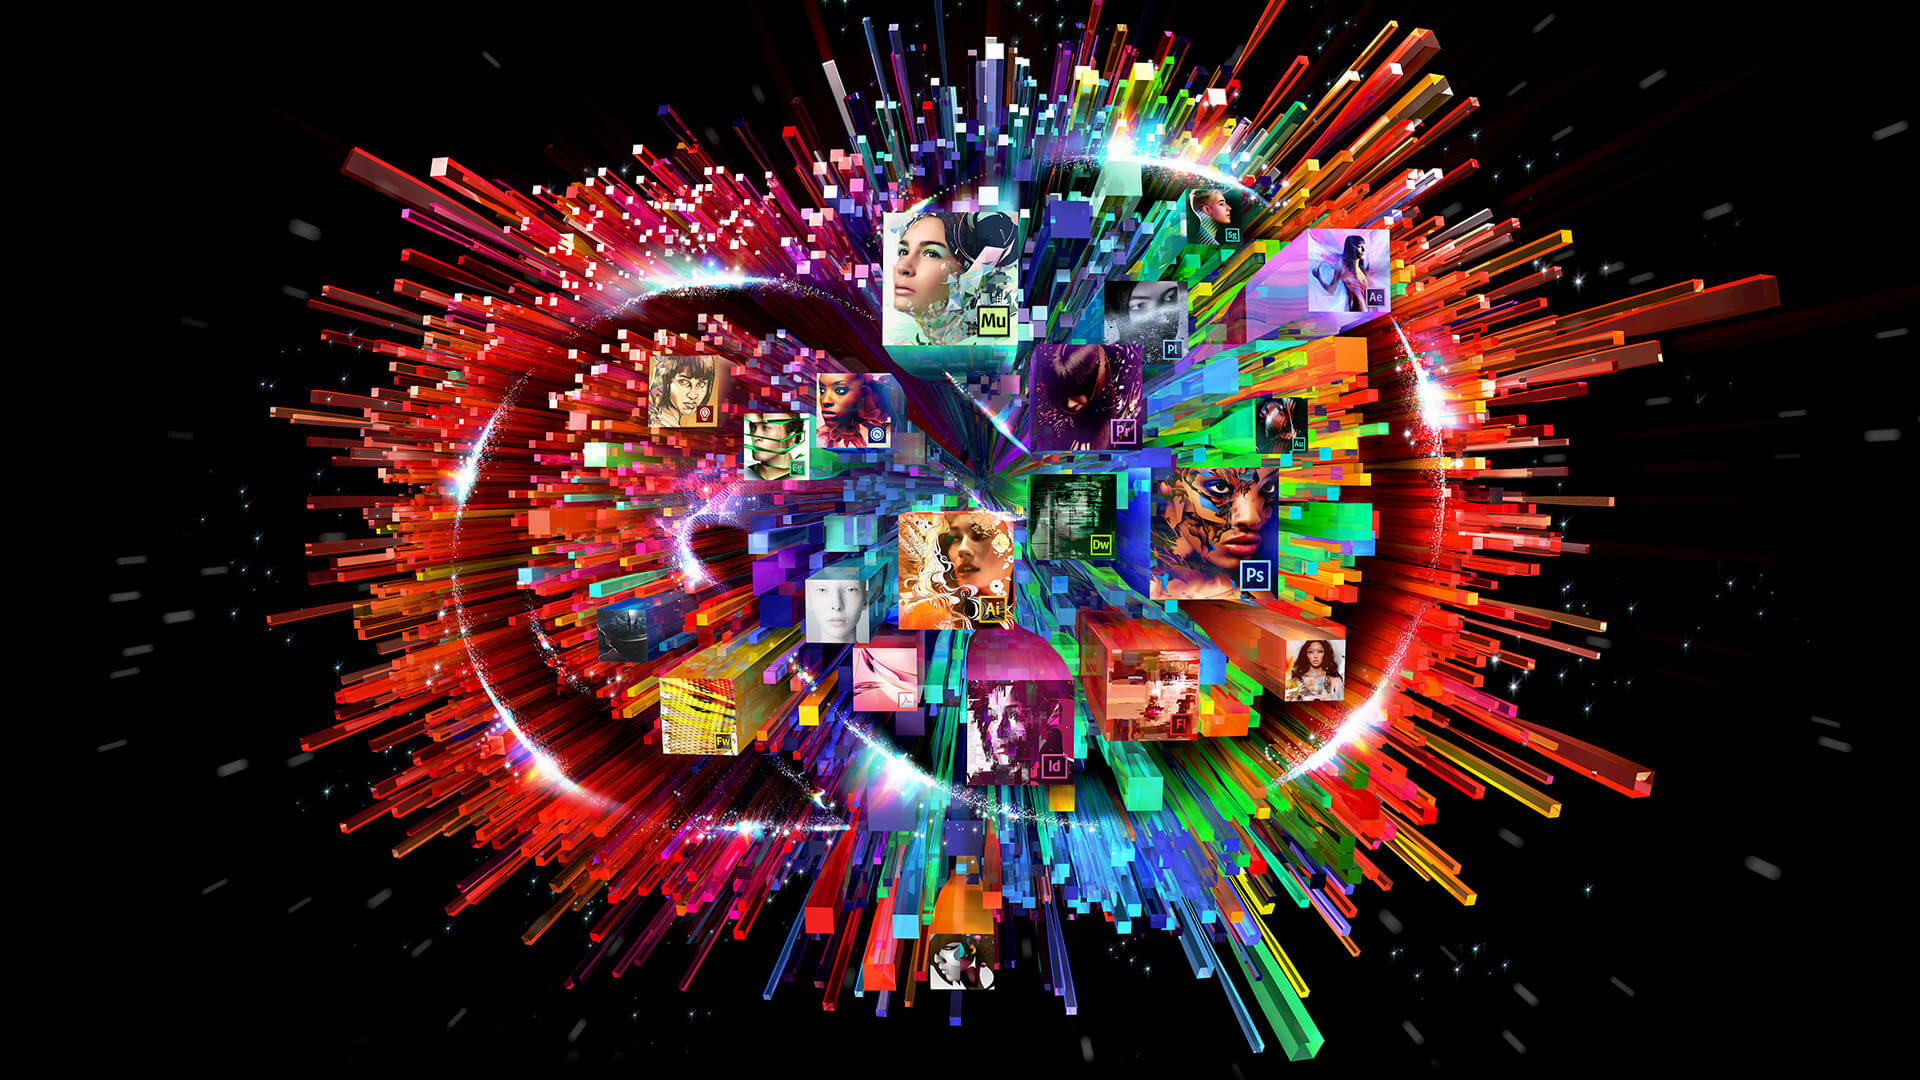 Adobe warns users of older Creative Cloud apps of potential copyright claims